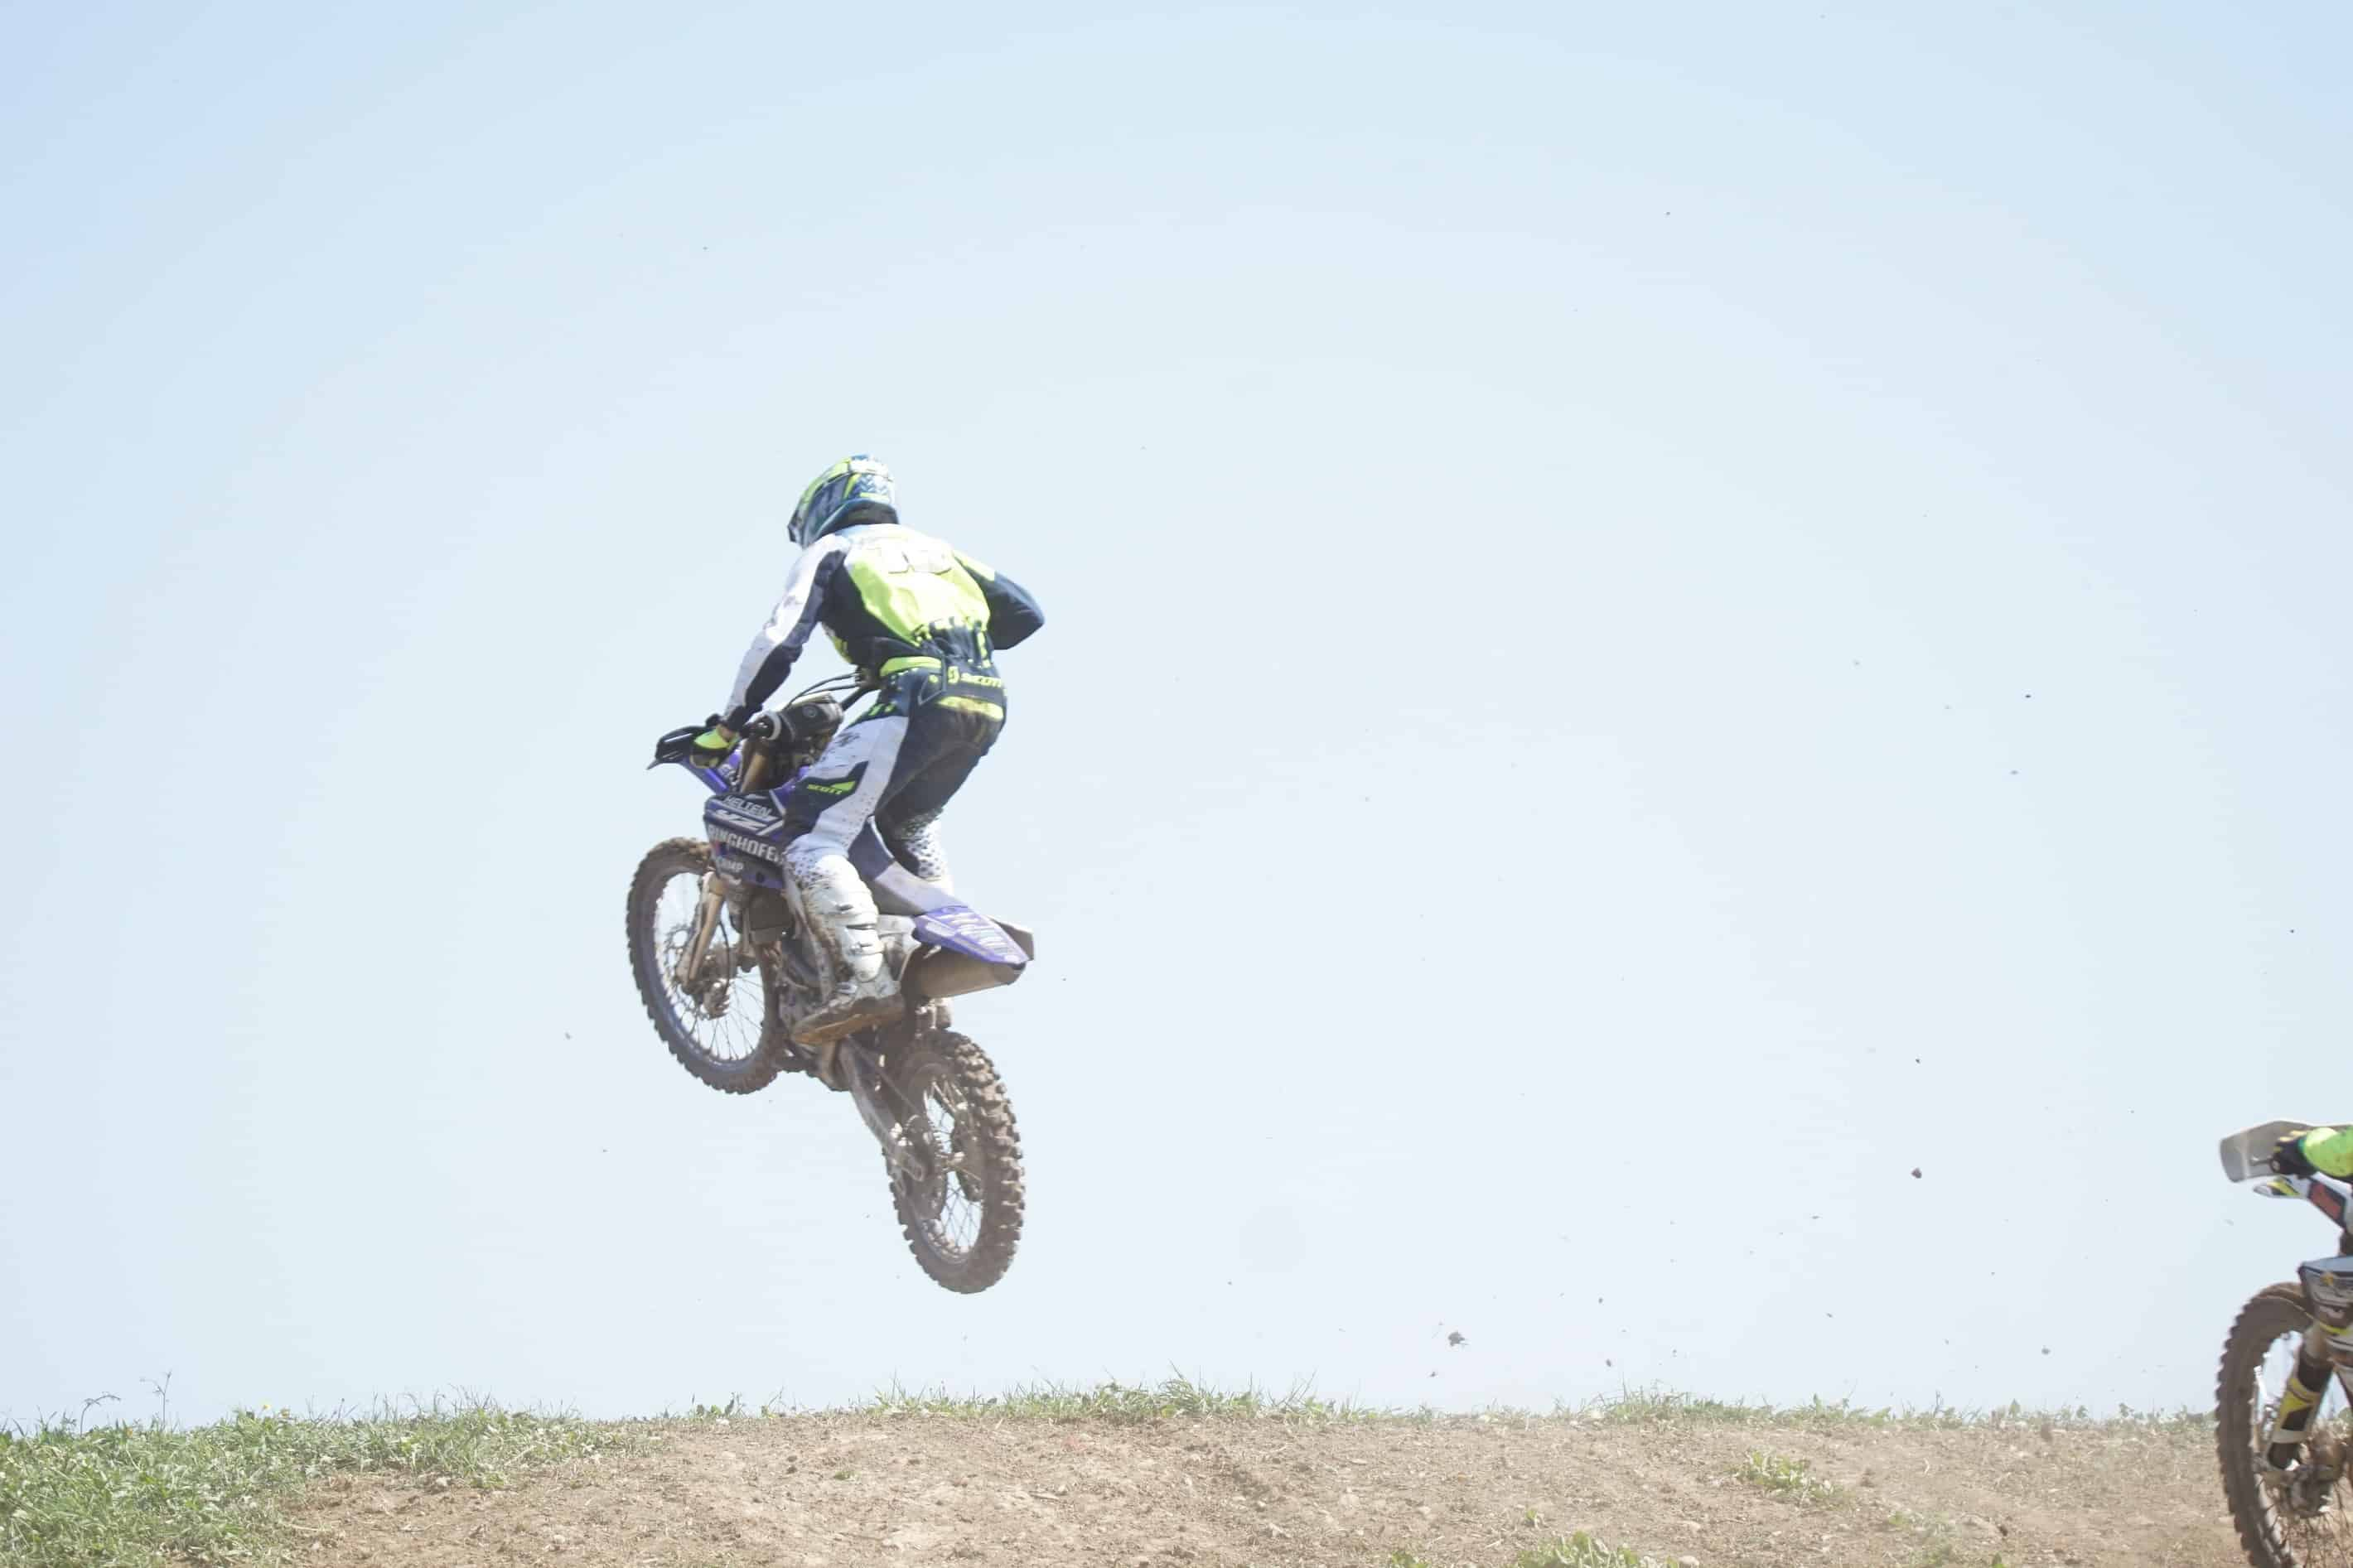 DSC 665_Moto Cross Sittendorf Teil1 am 29.04.2018